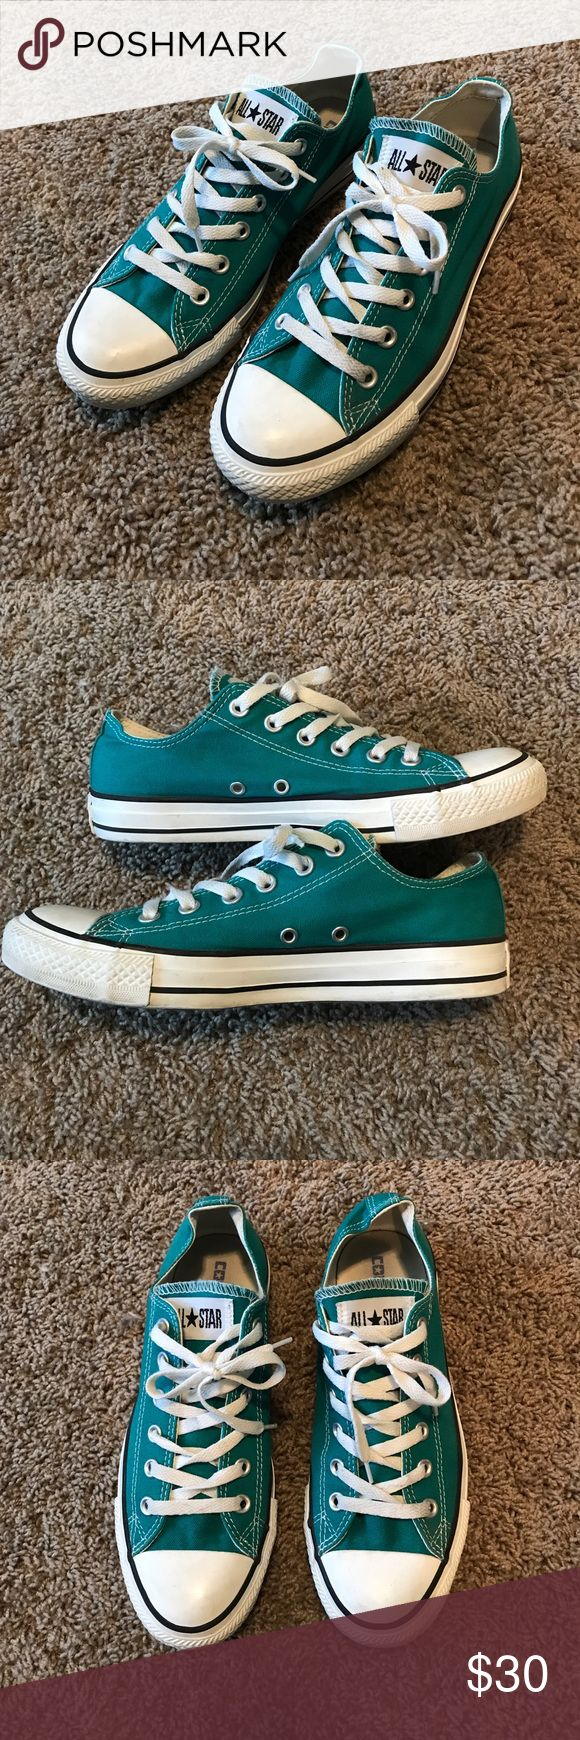 Turquoise Converse Pre-loved chucks! They have only been worn by me a few times and have a lot to give still! Make an offer! Converse Shoes Sneakers